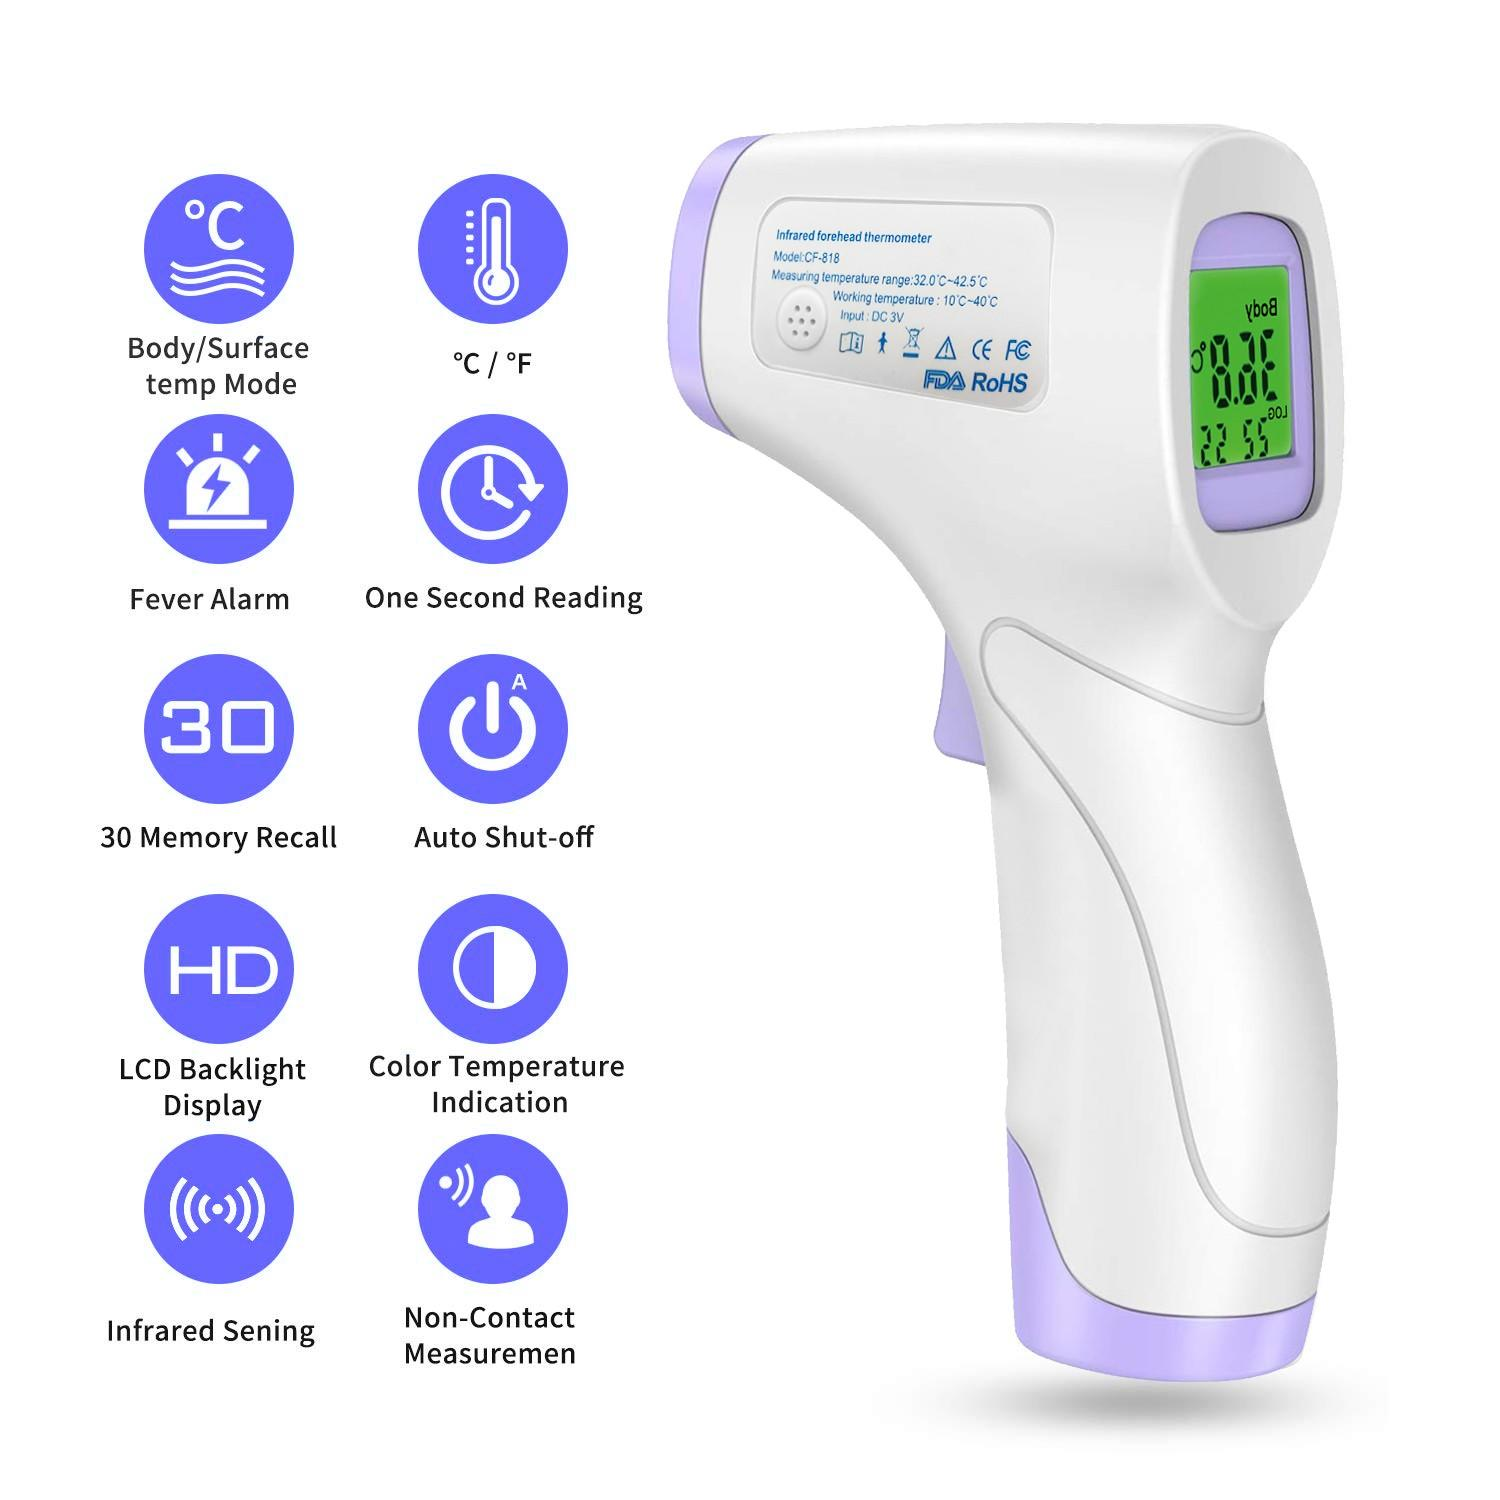 HoldPeak hp970b ir laser thermometer for business for customs